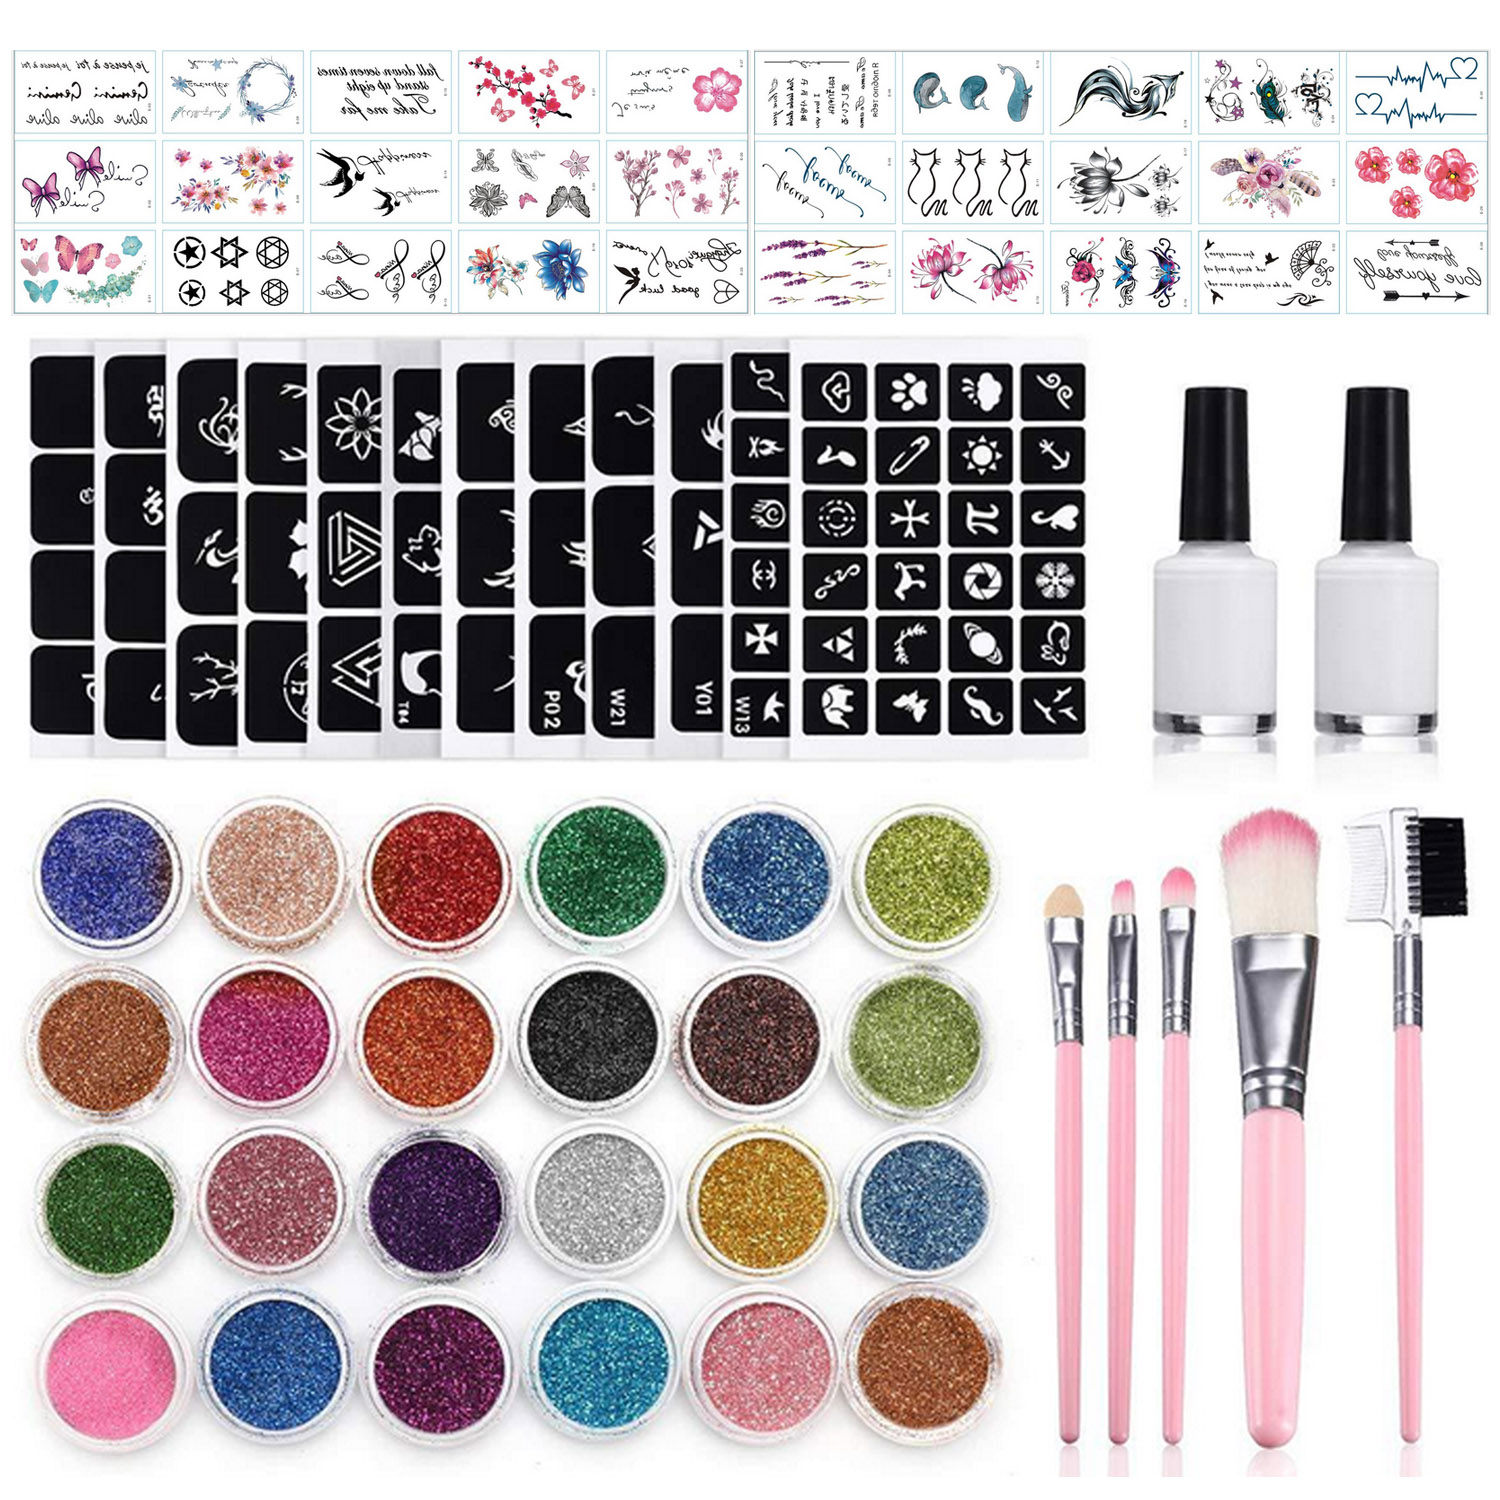 182pcs Glitter Tattoo Set 24 Colors 30 Uniquely Themed Temporary Stickers 120 Patterns Hollow Mold For Kids Teens Adult